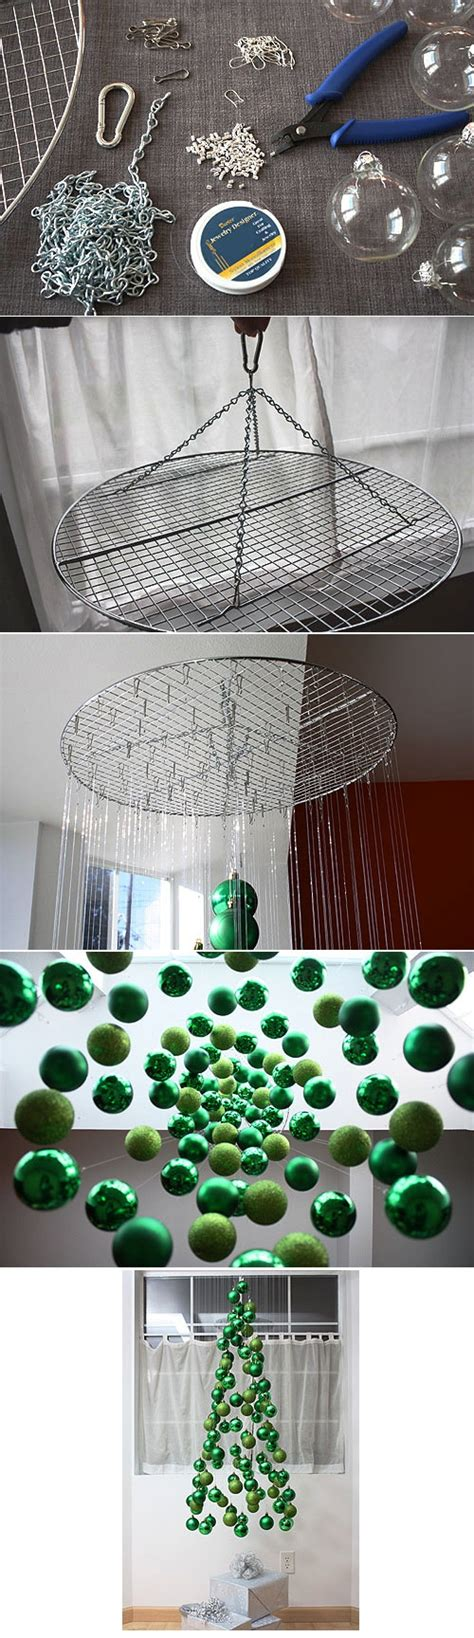 xmas tree structure 56 diy tree crafts ideas the wow style